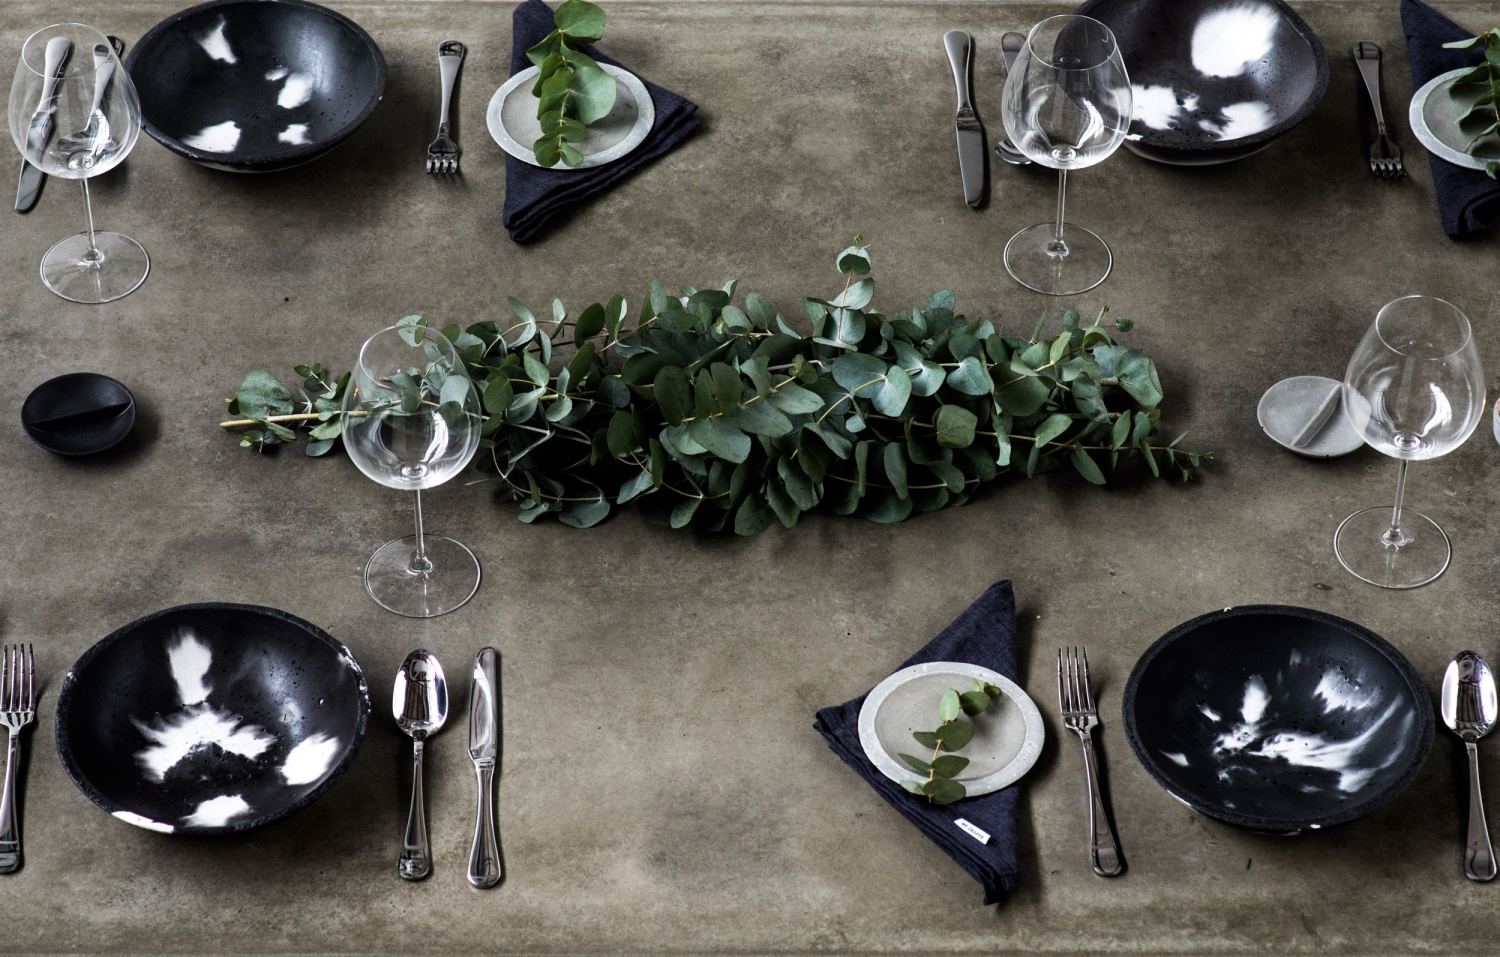 Harper-and-Harley_Sara-Donaldson_Etsy_Awards_Dinner-party_setting_grey_concrete_7